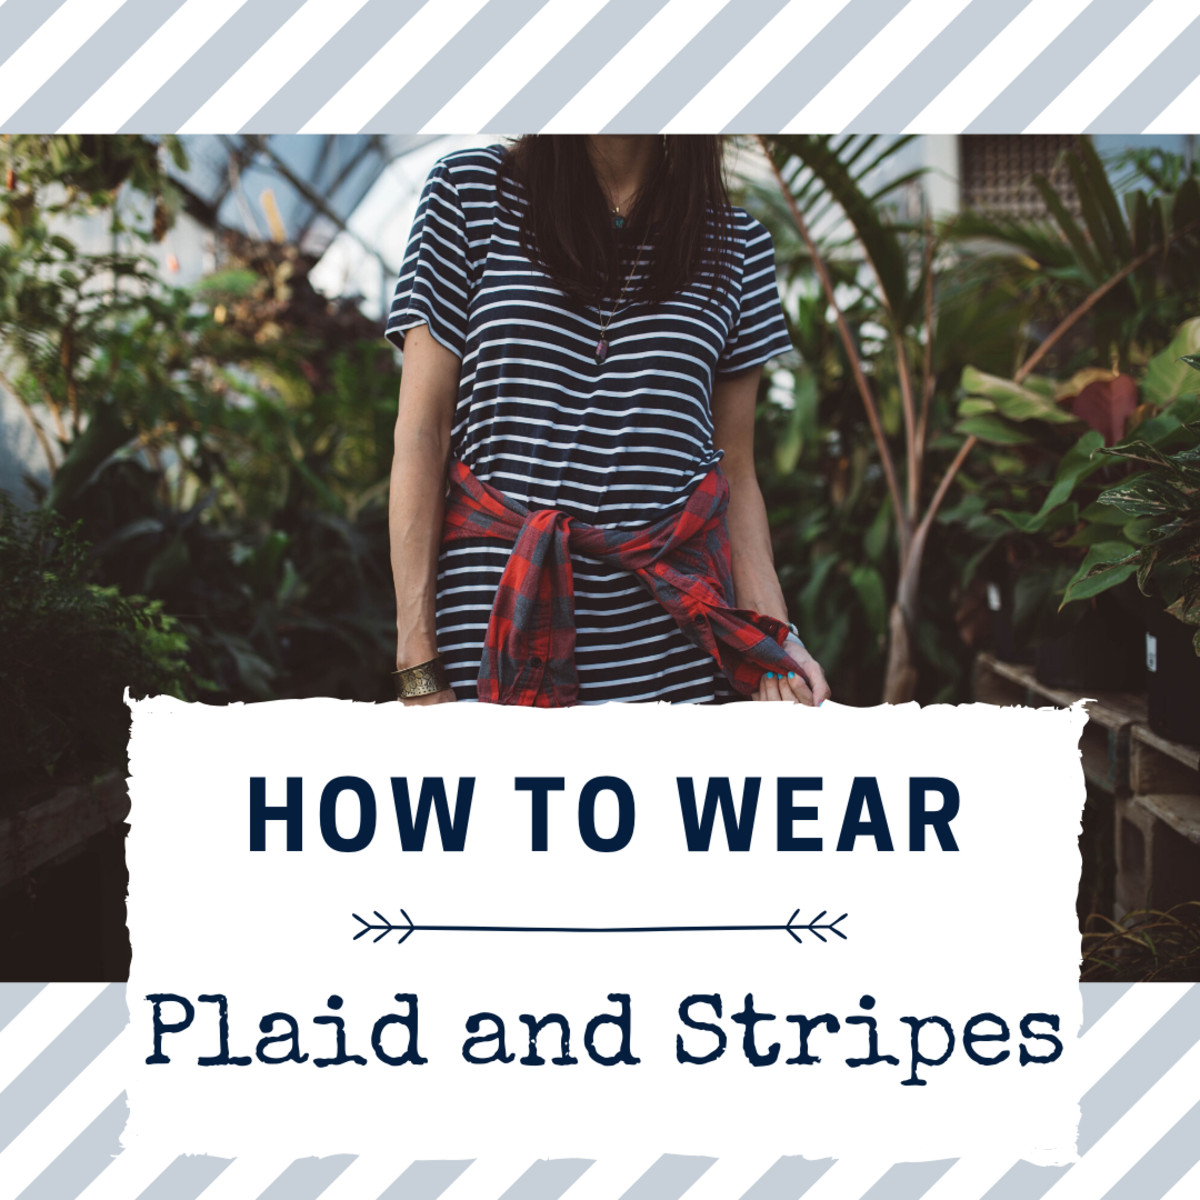 Stripes and Plaid Together: Fashion Do or Don't?